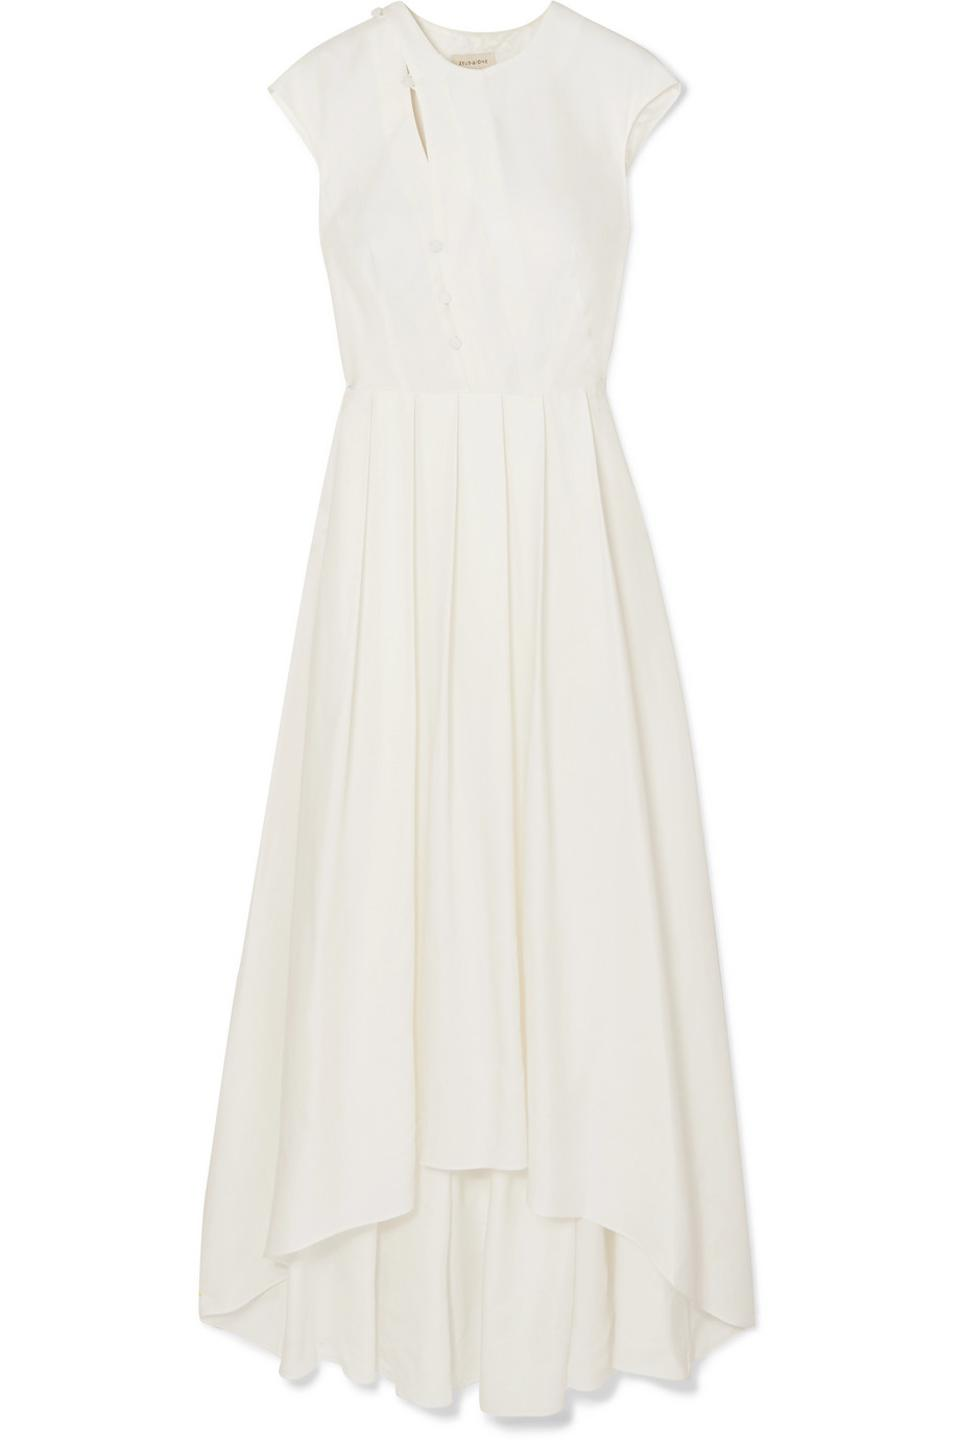 Zeus + Dione Ariana Asymmetric Pleated Twill Maxi Dress